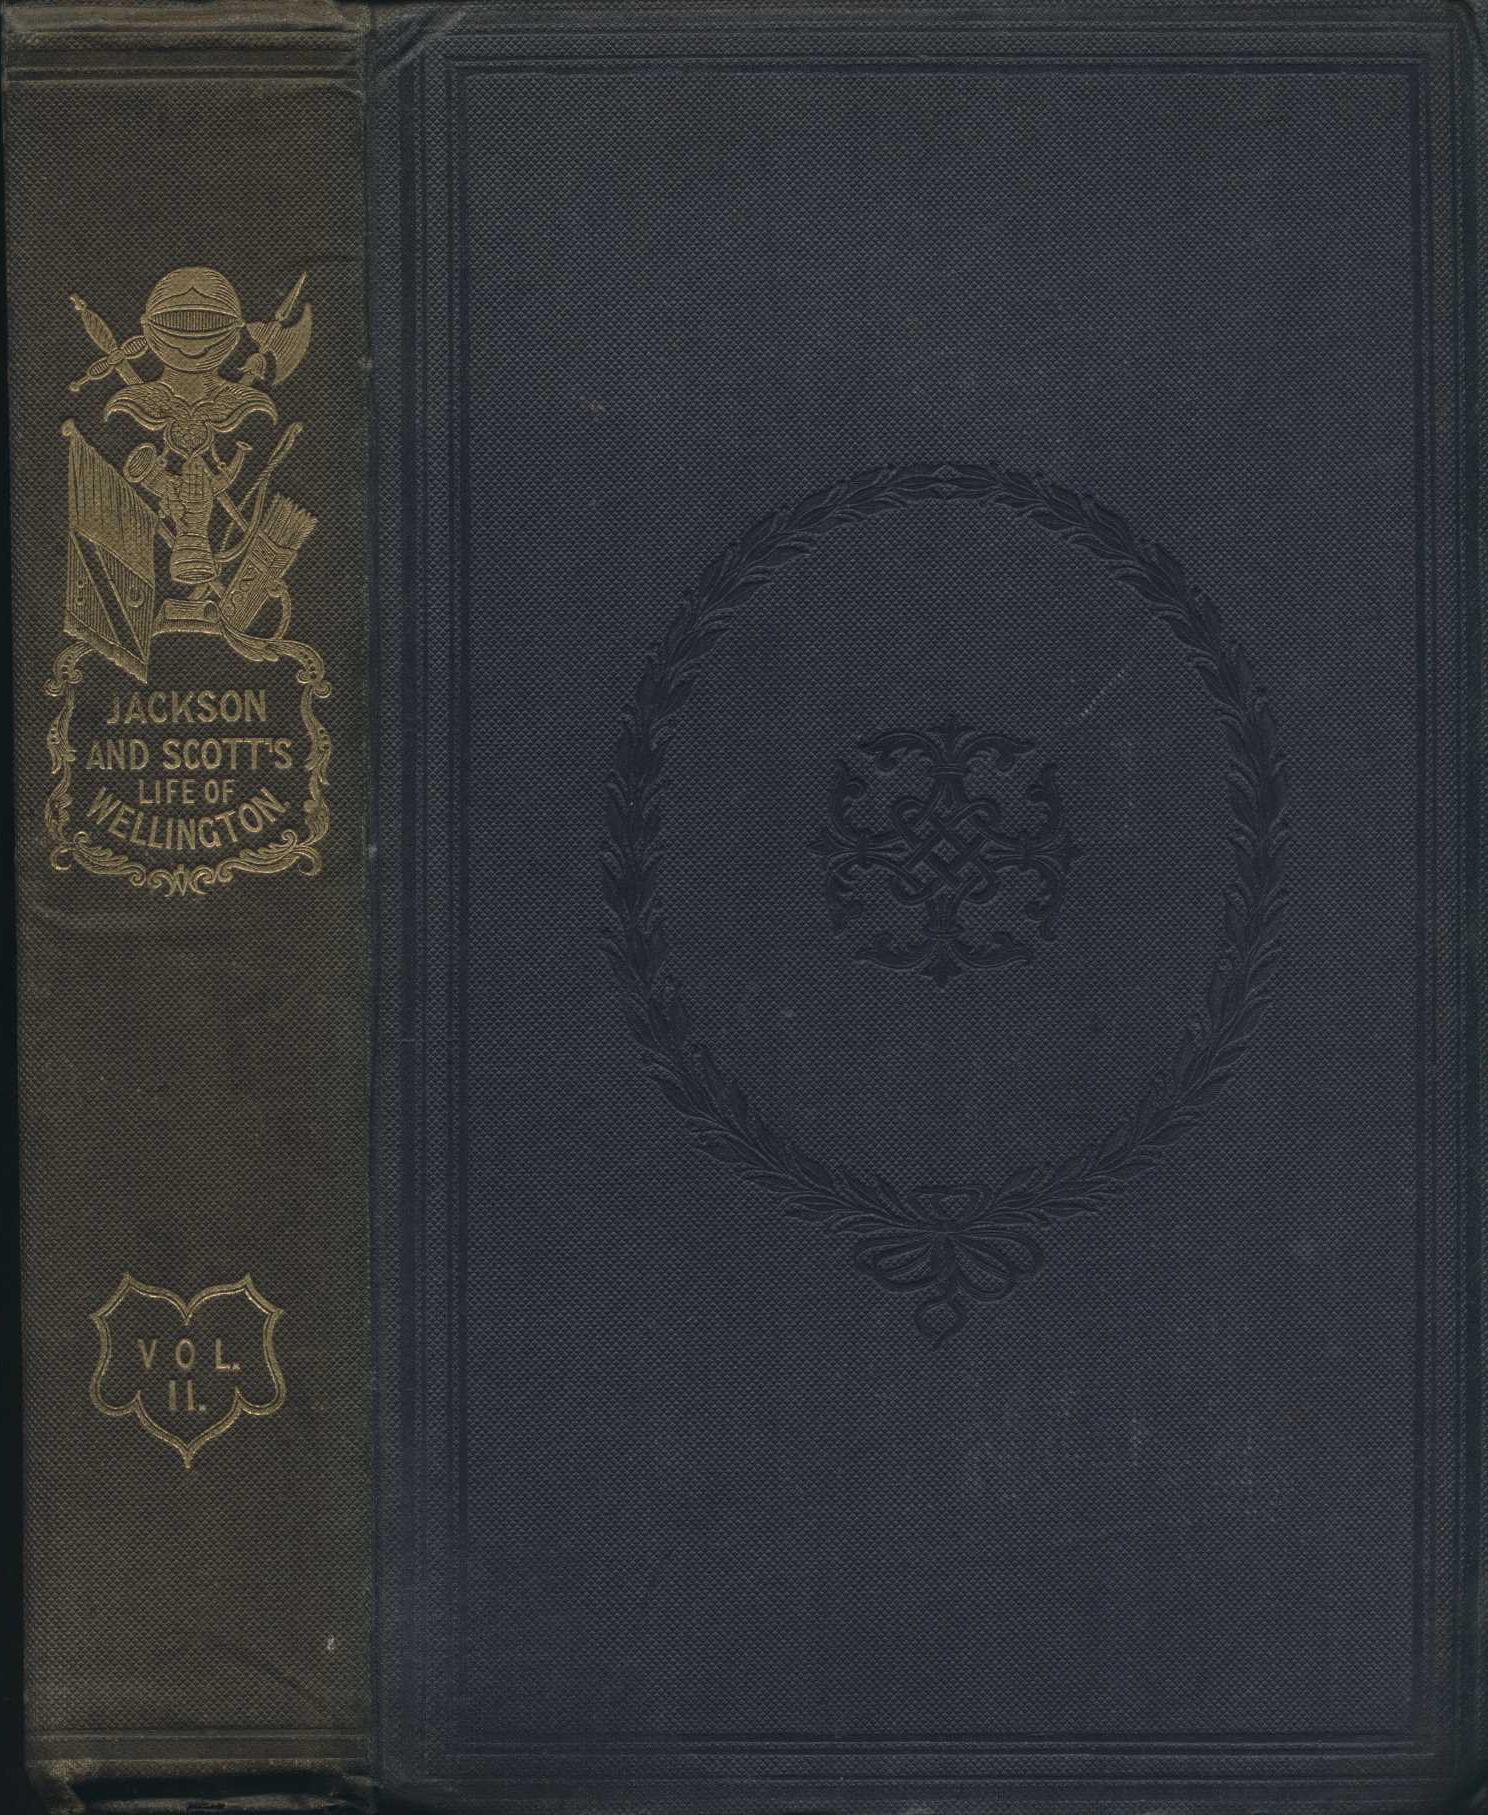 Basil Jackson and C. Rochfort Scott. The military life of Field Marshal the Duke of Wellington, K.G. &c. London: Longman, Orme, Brown, Green, and Longmans, 1840. Two volumes, Vol. 2 displayed.